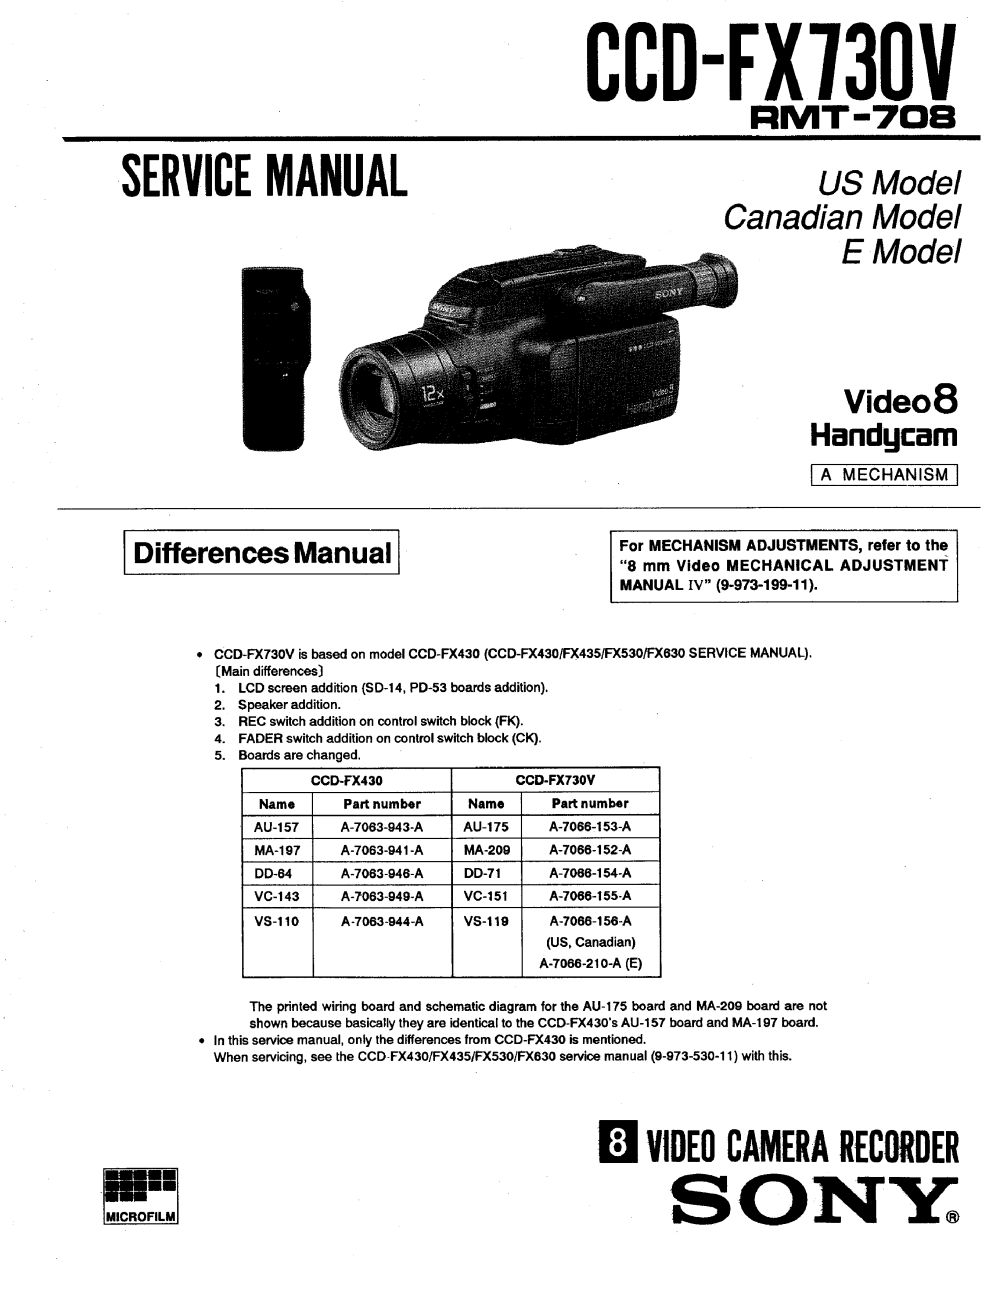 medium resolution of m 9 kenwood at 130 user manual m 9 magnum dynalab hs mb mc 43s mc 48b pg 2n pg 3b ps rc sp 40sp 50b sp sw 100a sw 100b sw 200a sw 200b swt swt